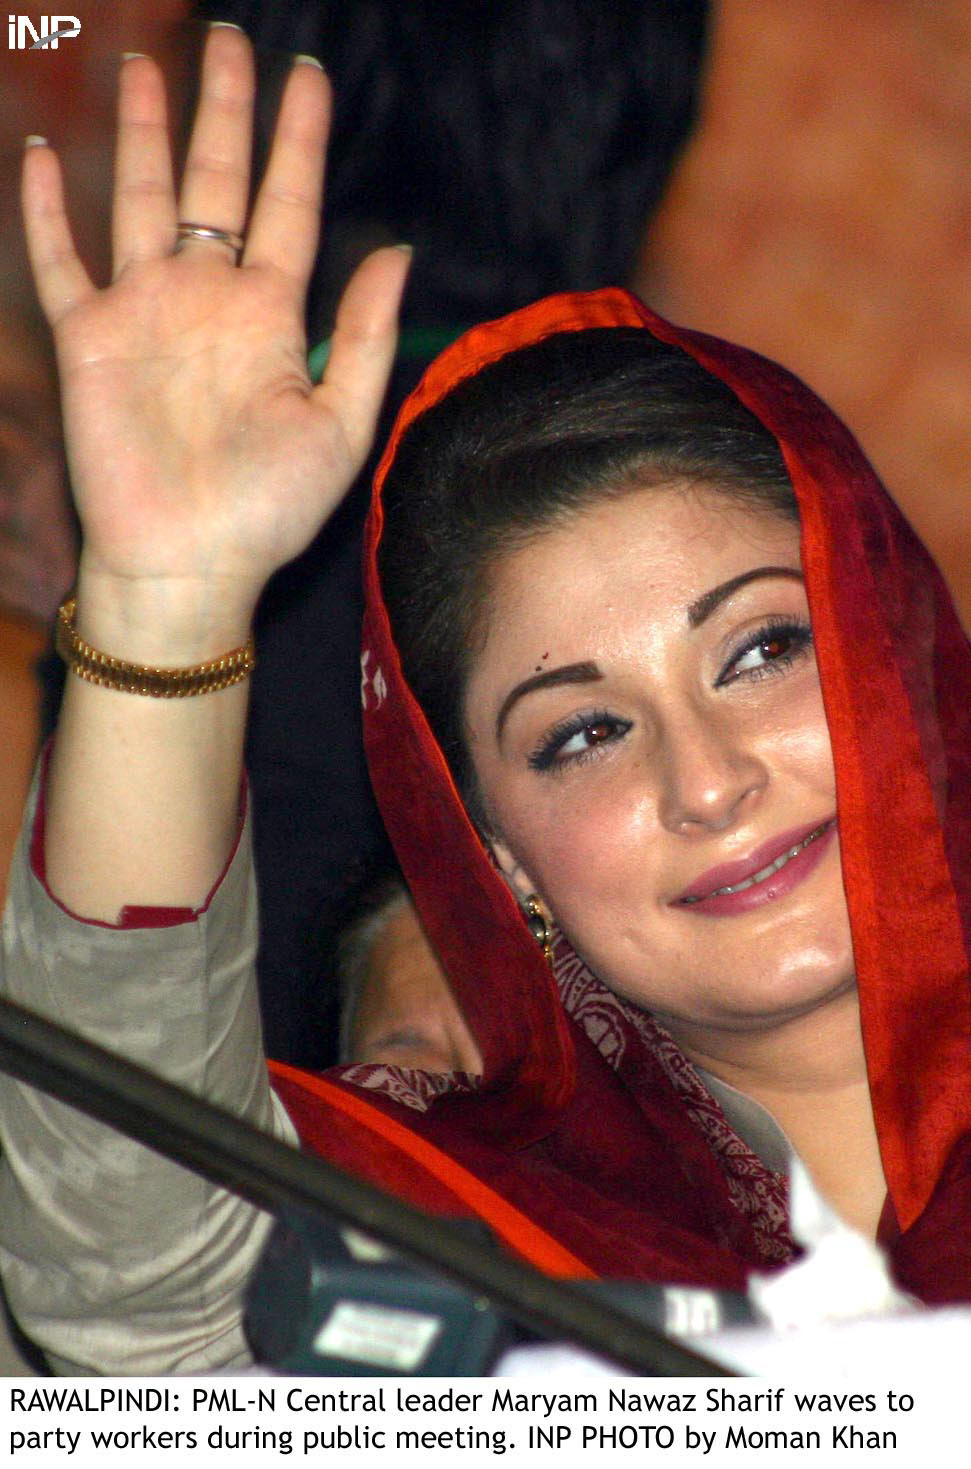 Prime Minister Nawaz Sharif's daughter Maryam Nawaz. PHOTO: INP / FILE